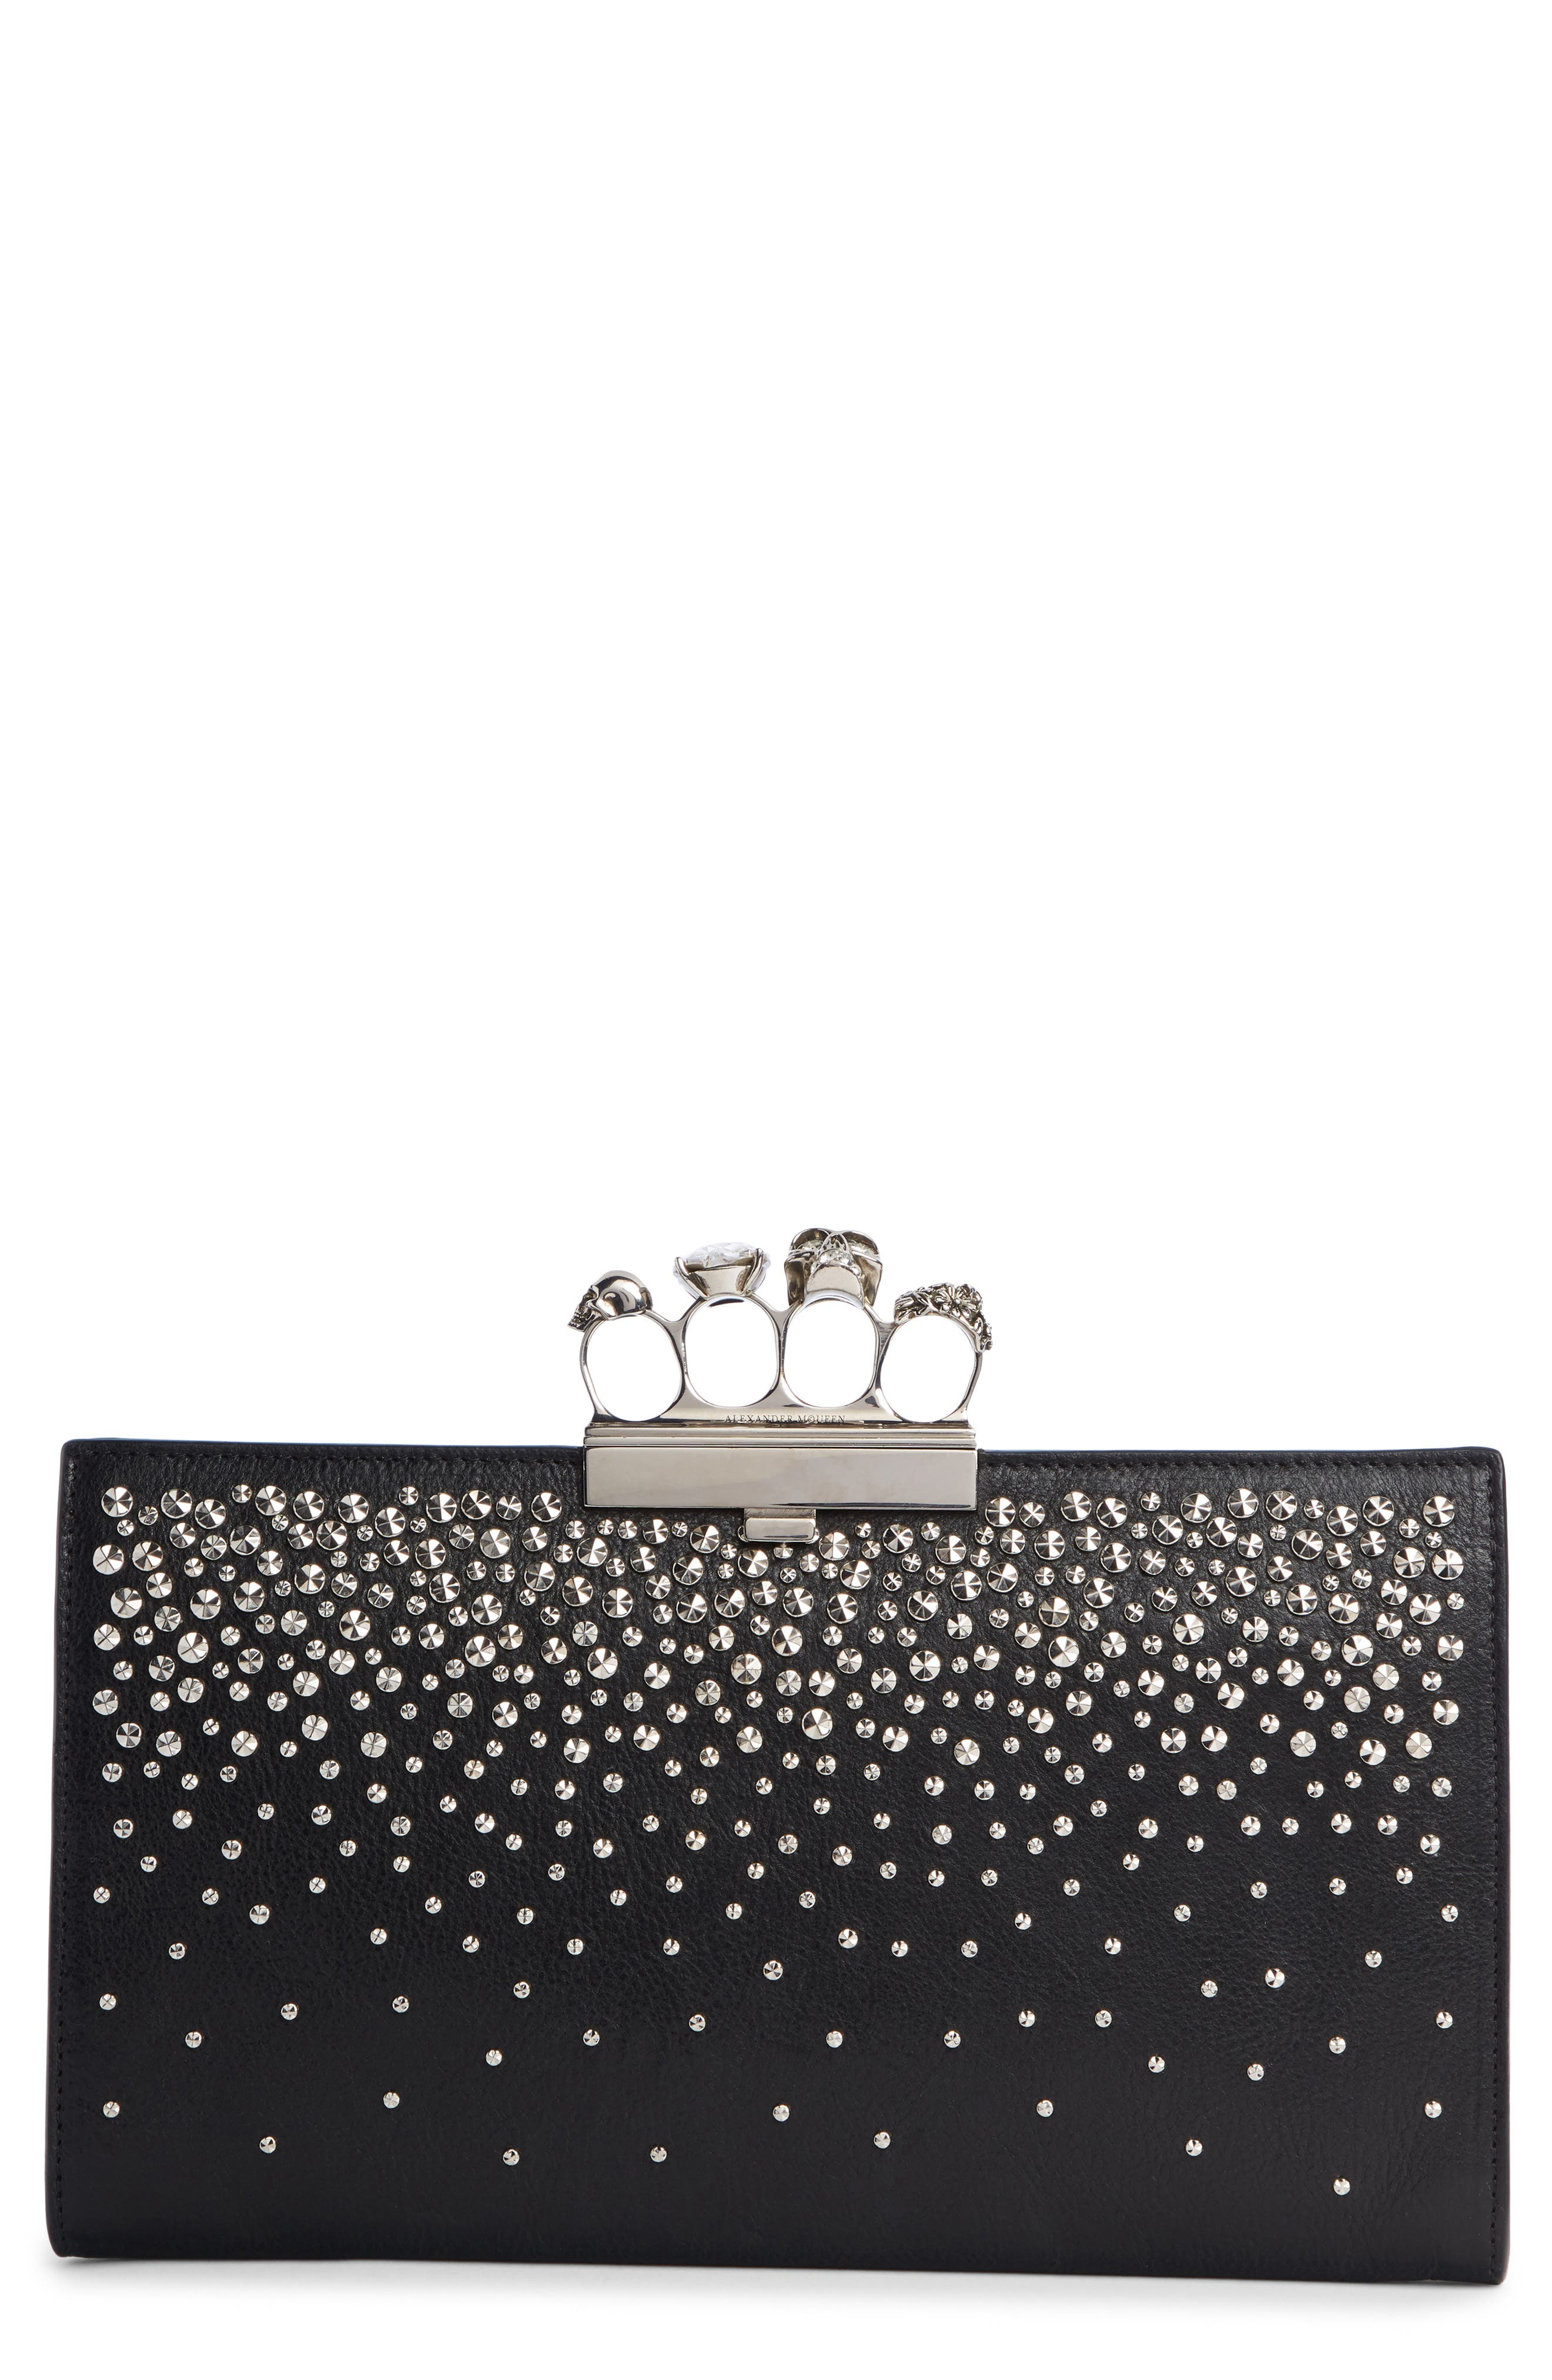 Four Ring Studded Knuckle Clasp Leather Clutch,                             Main thumbnail 1, color,                             BLACK